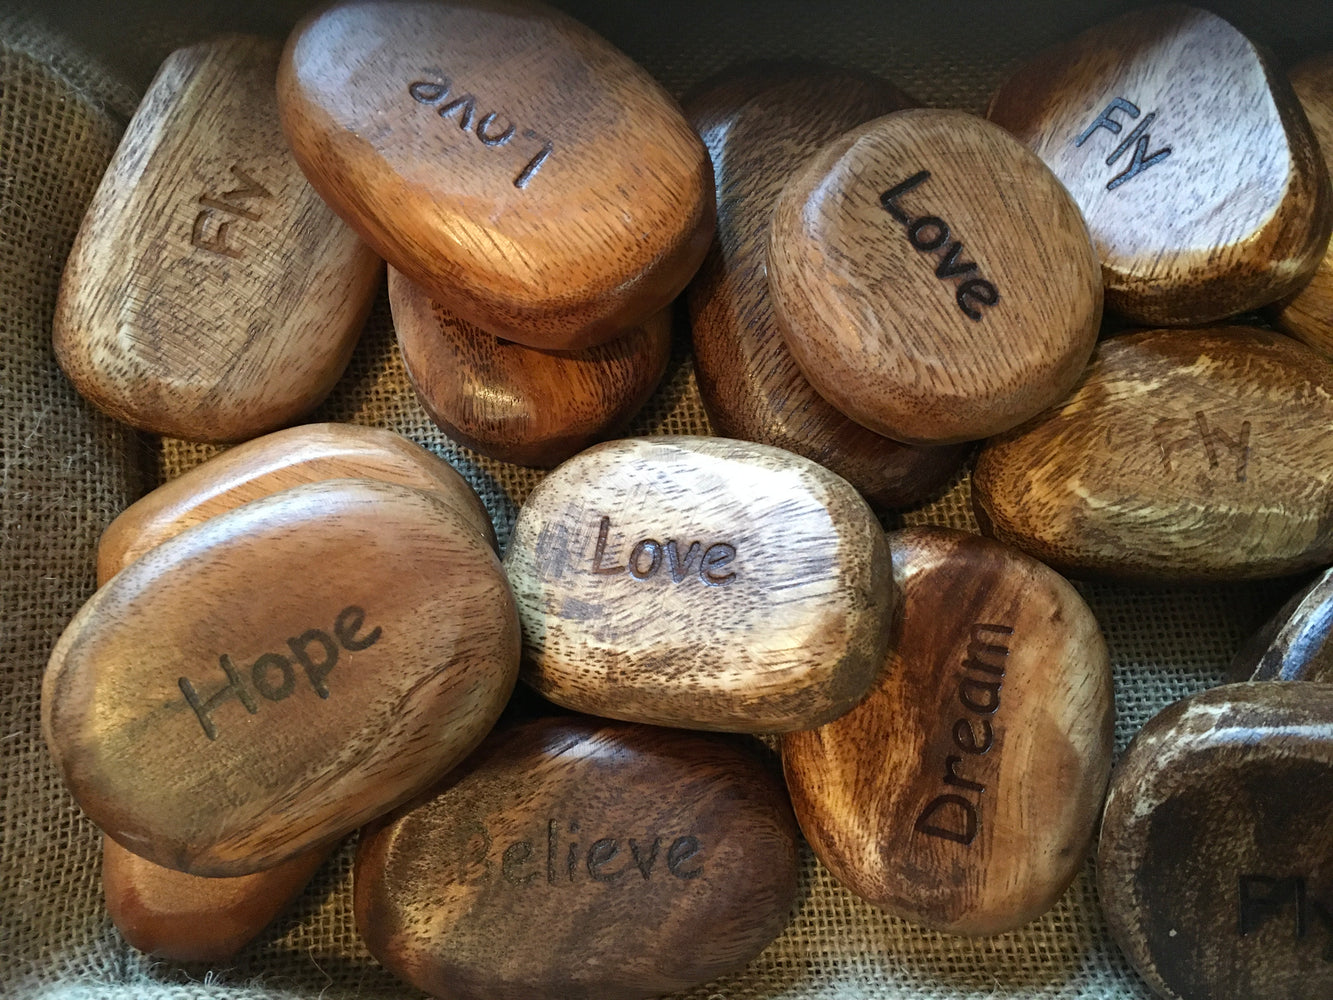 Acacia Wood Stone with Inspiring Word